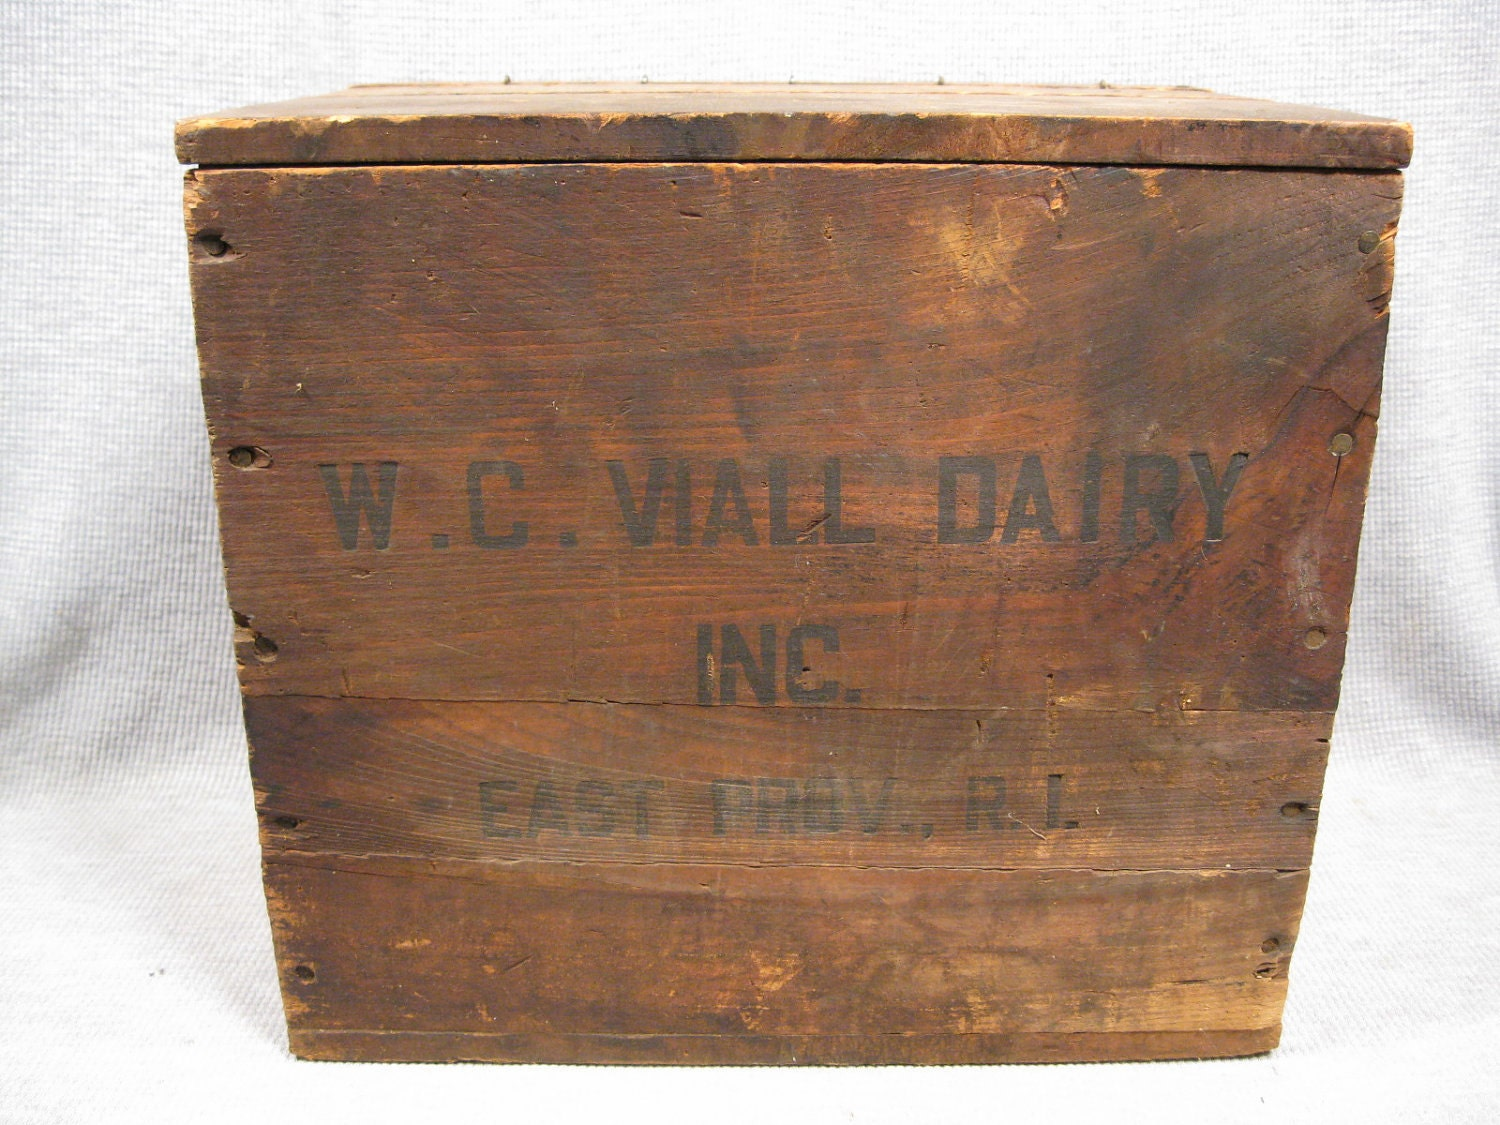 Vintage Wood Milk Delivery Box Viall Dairy By Ccwashashore